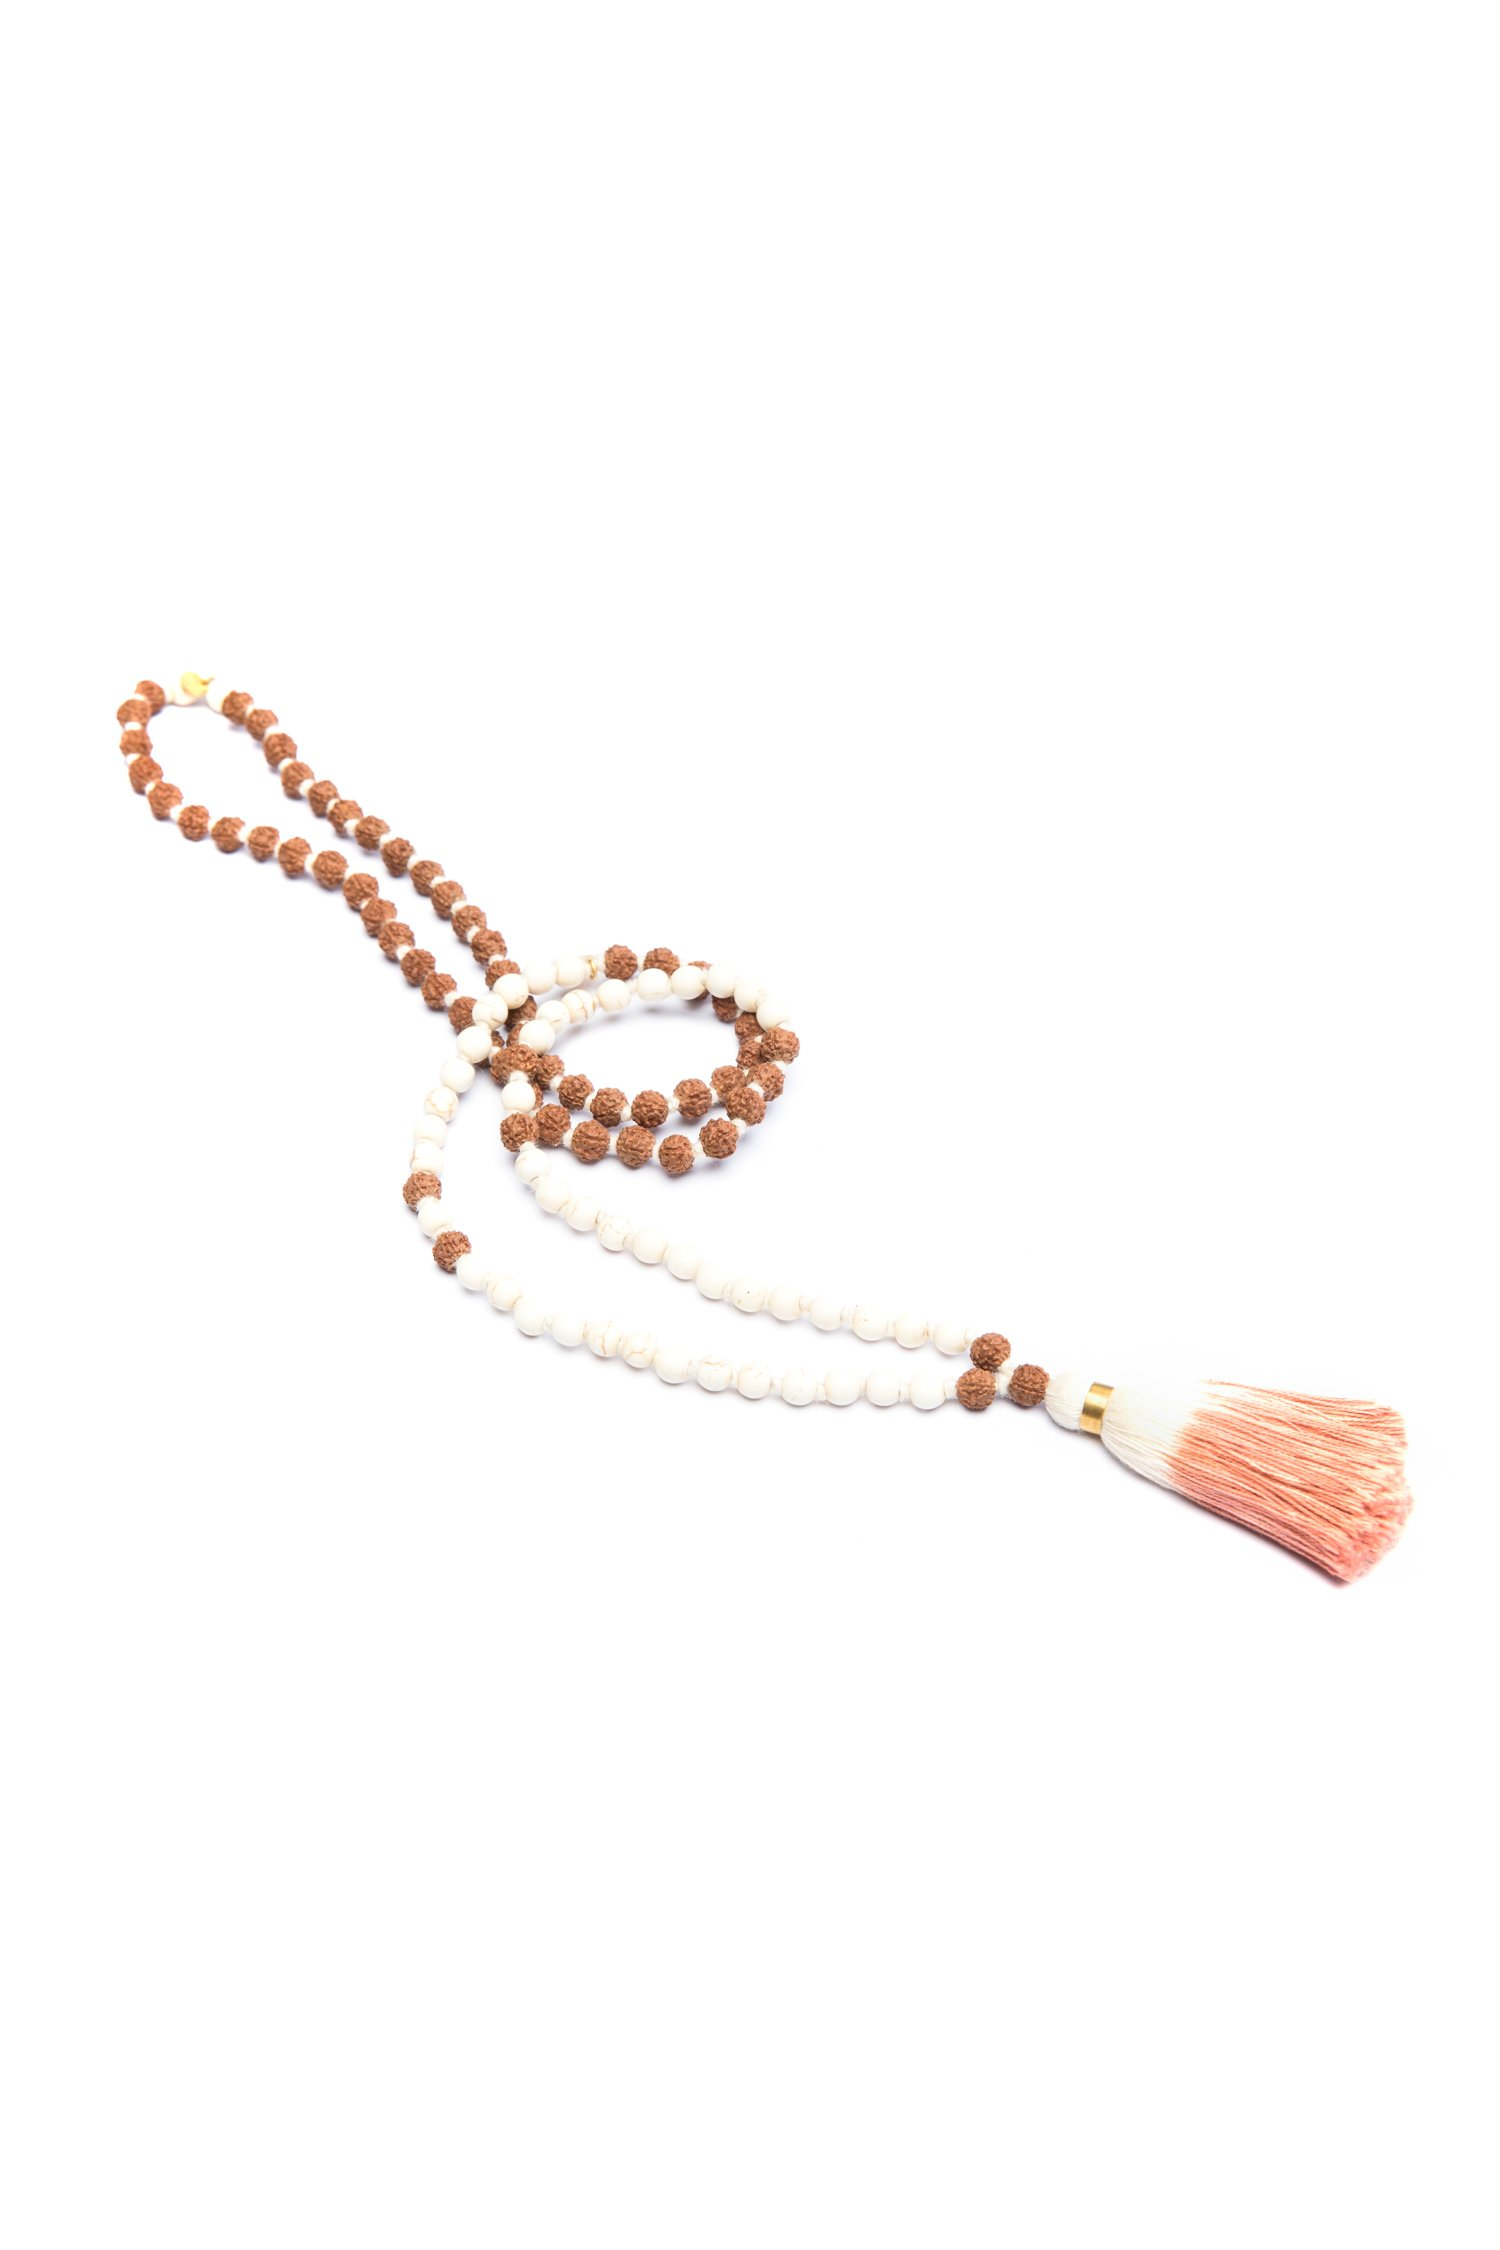 The Quietus Mala